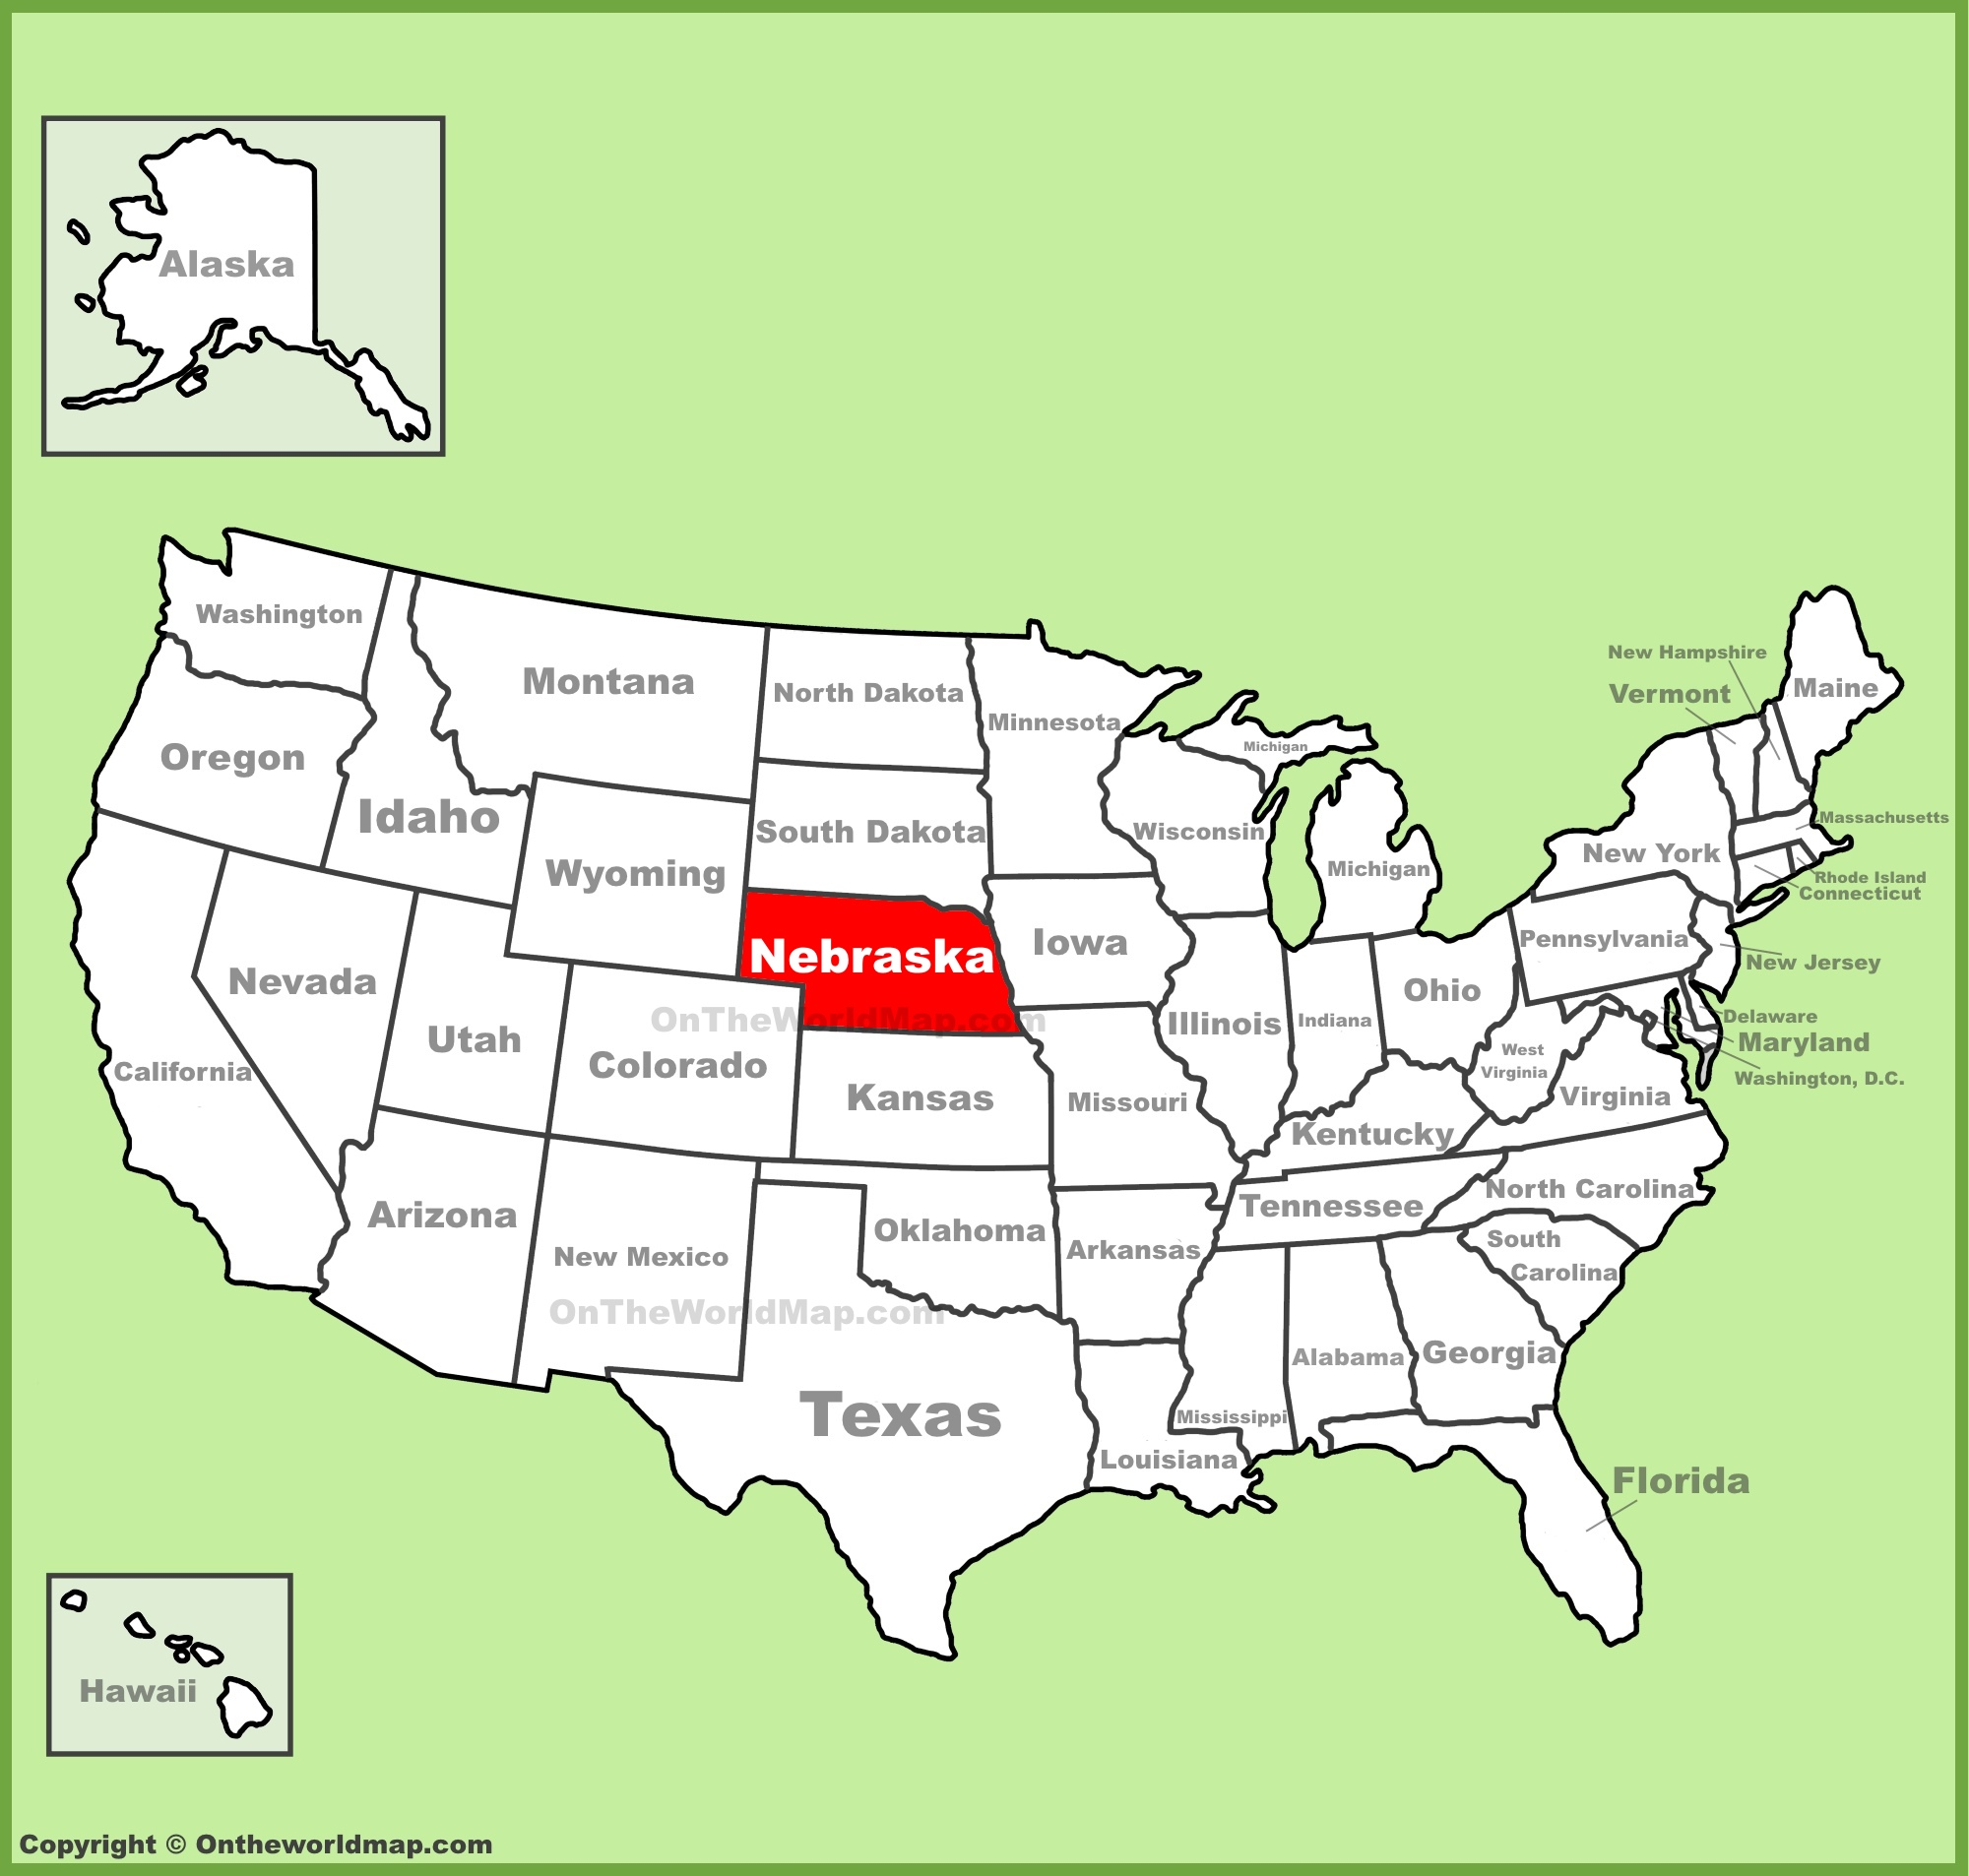 Nebraska On Map Nebraska location on the U.S. Map